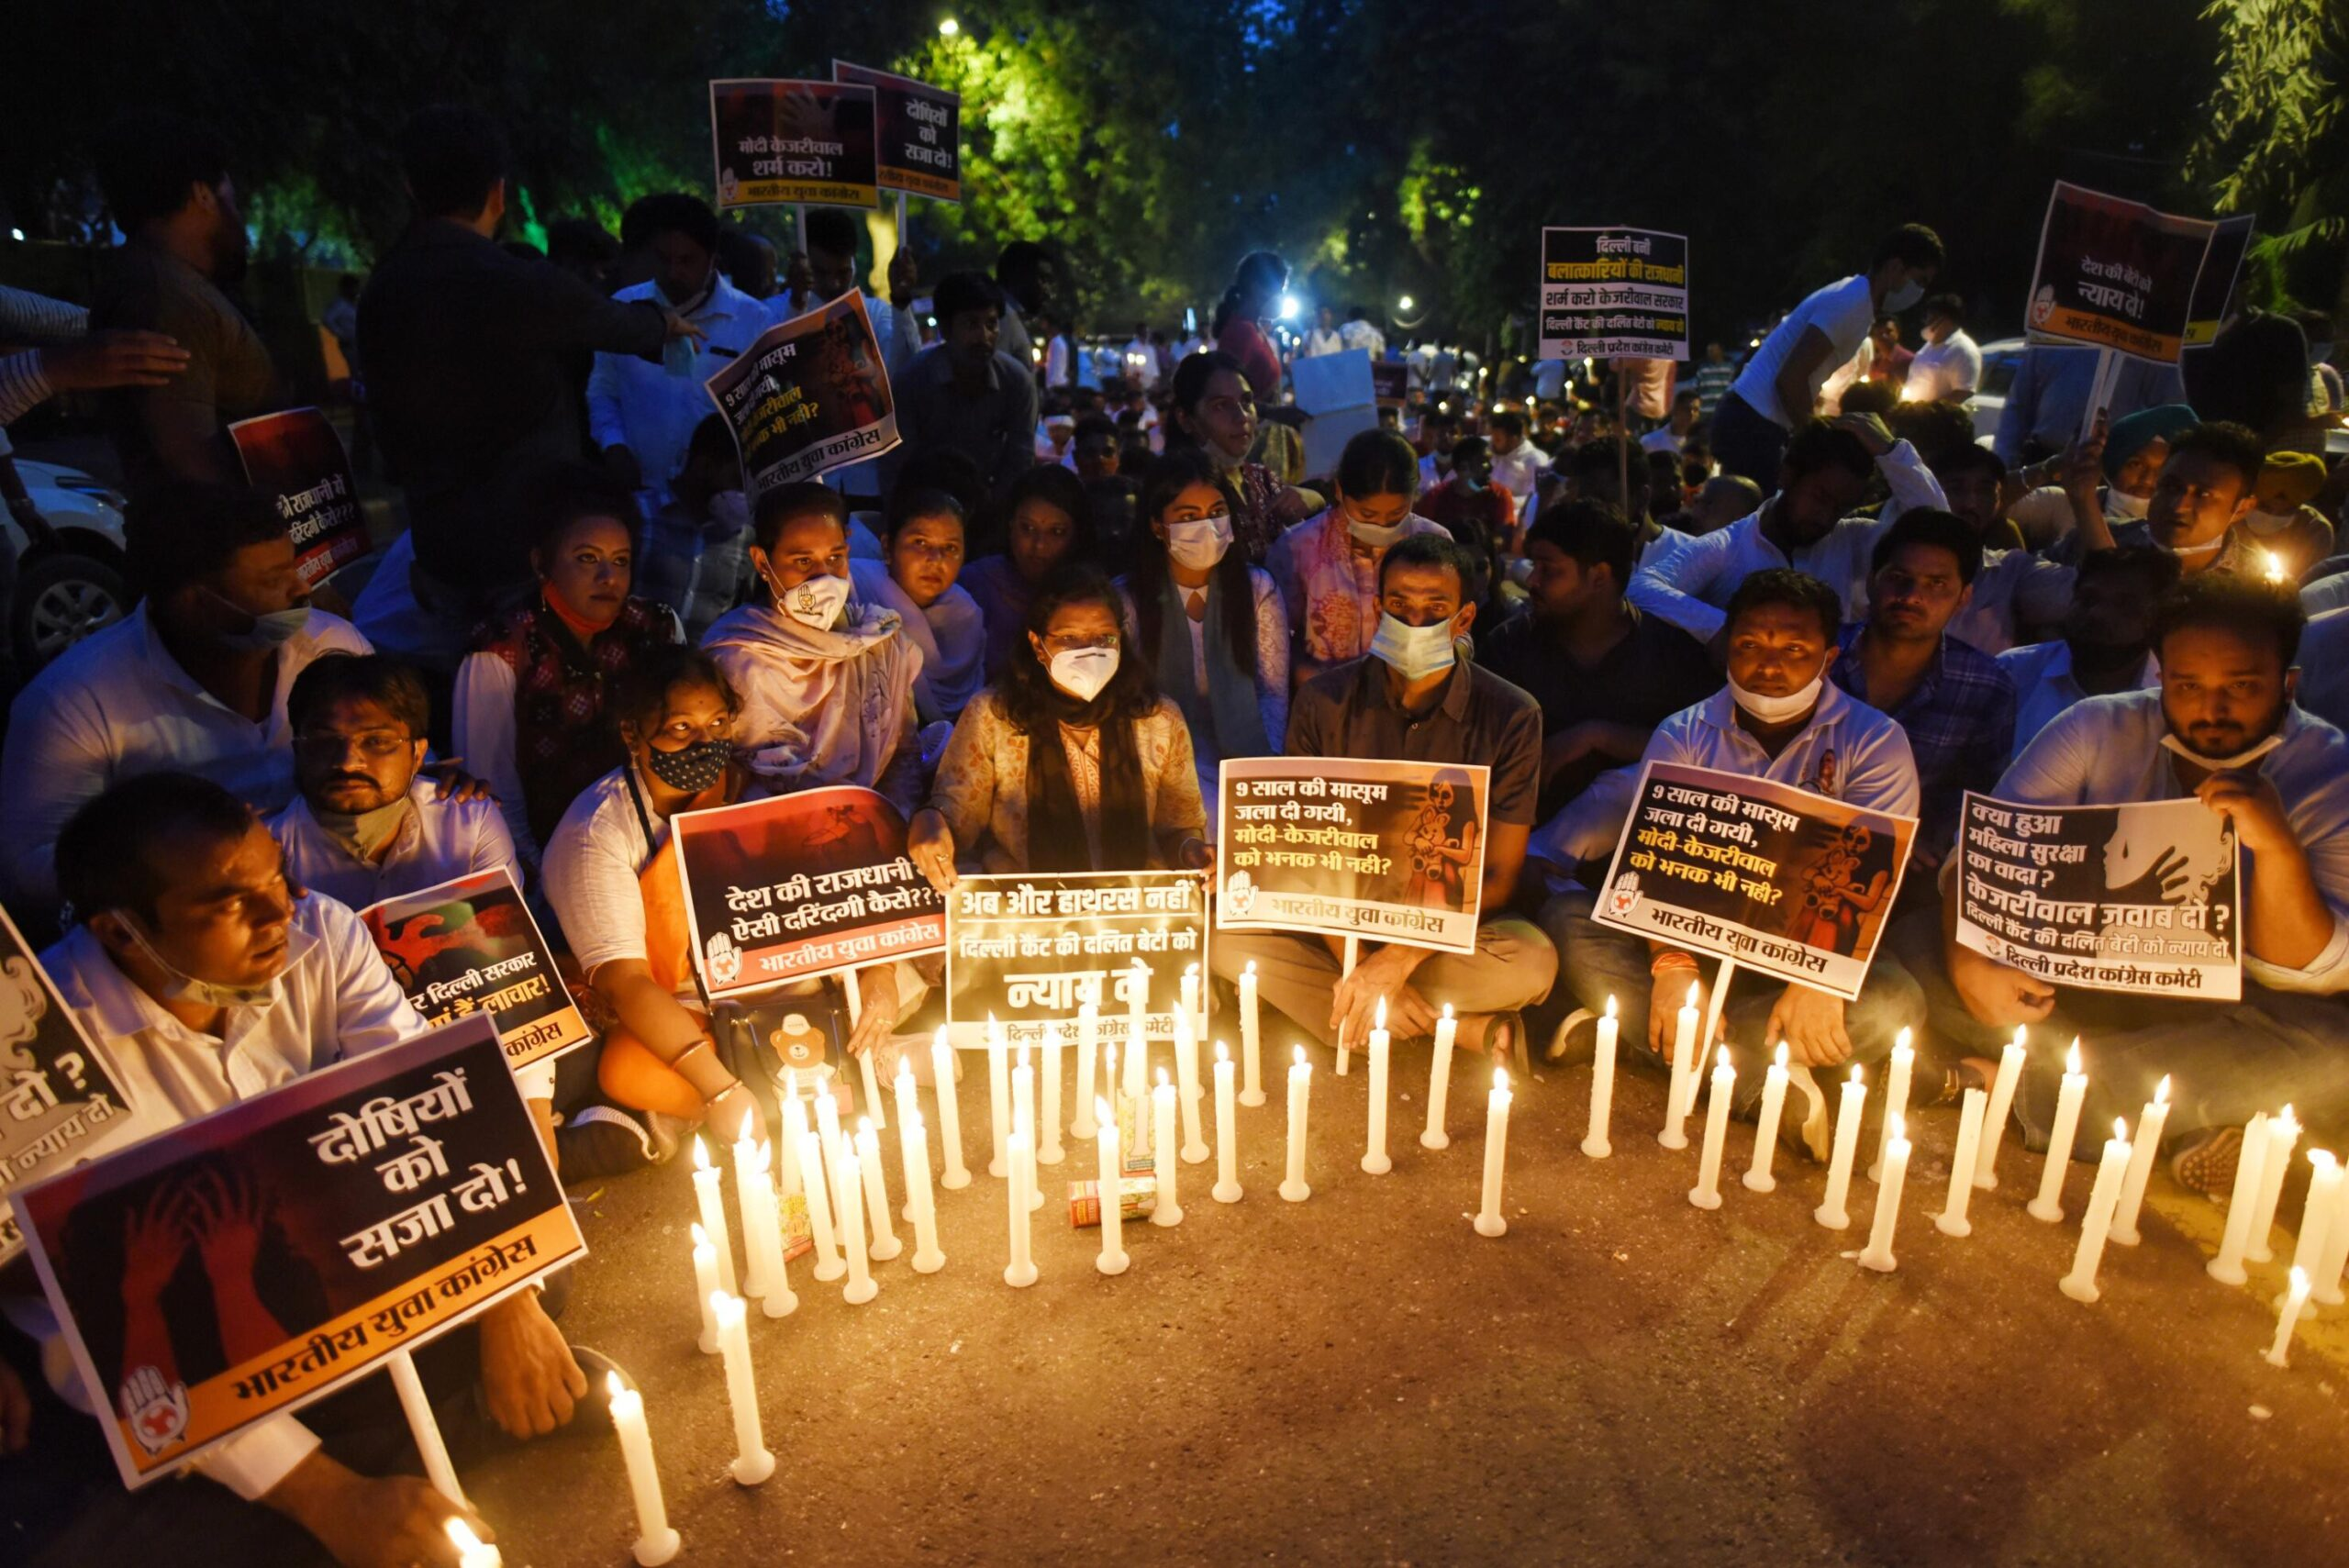 <i>Sanchit Khanna/Hindustan Times/Getty Images</i><br/>